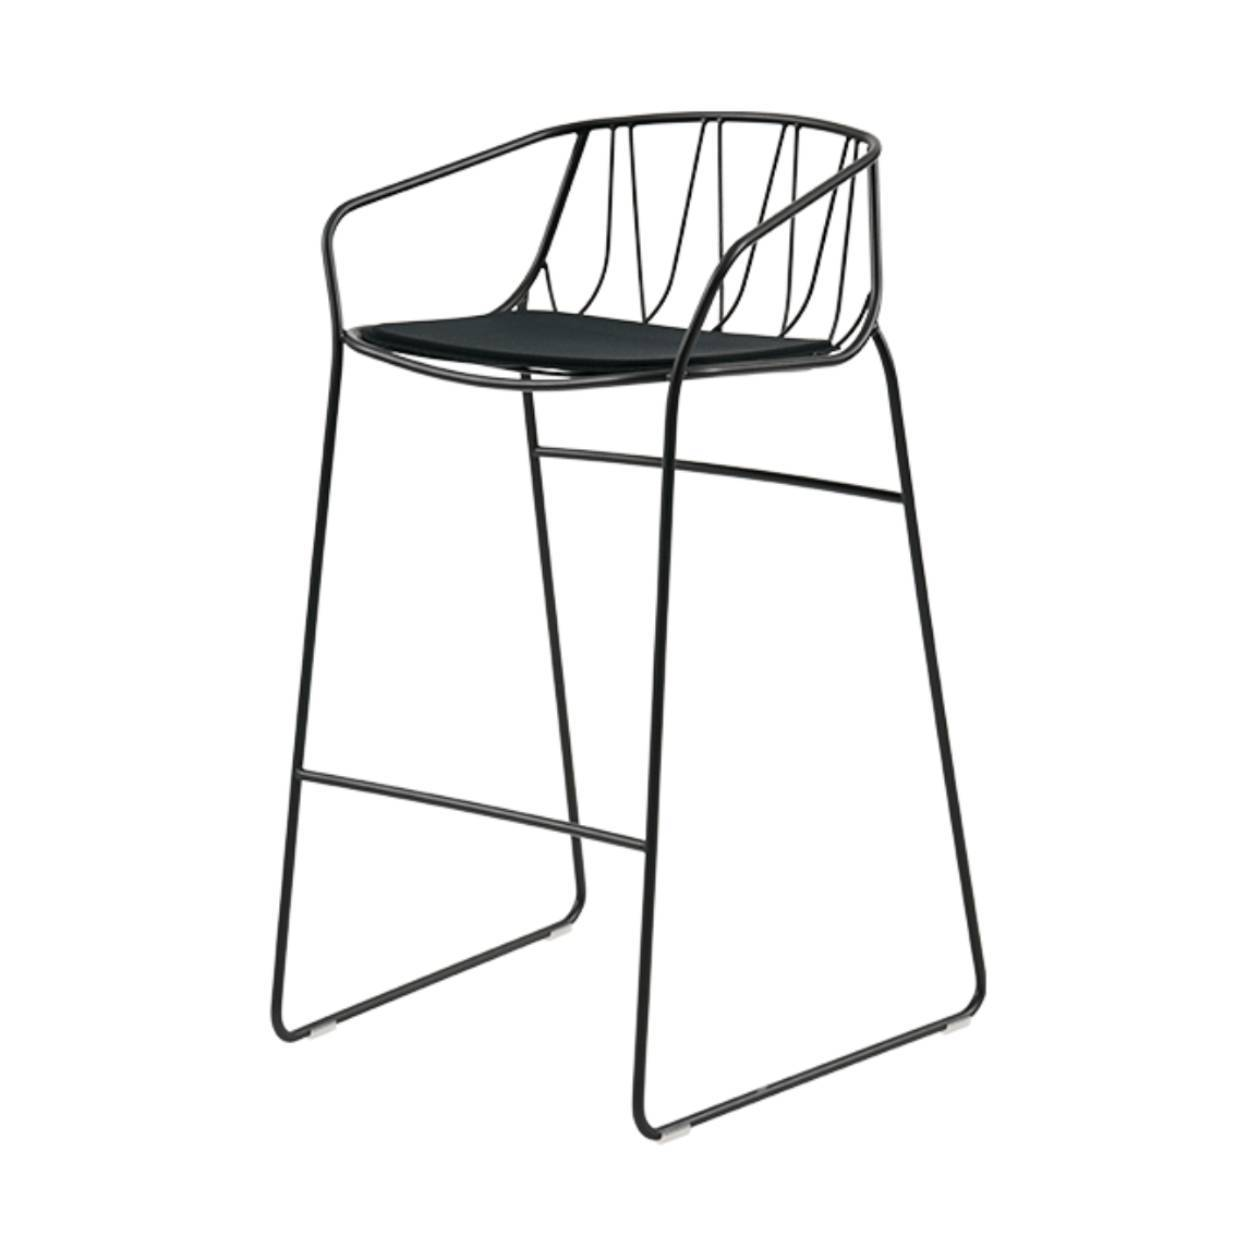 Chee Bar + Counter Stool: Bar + Black + Black Seat Pad